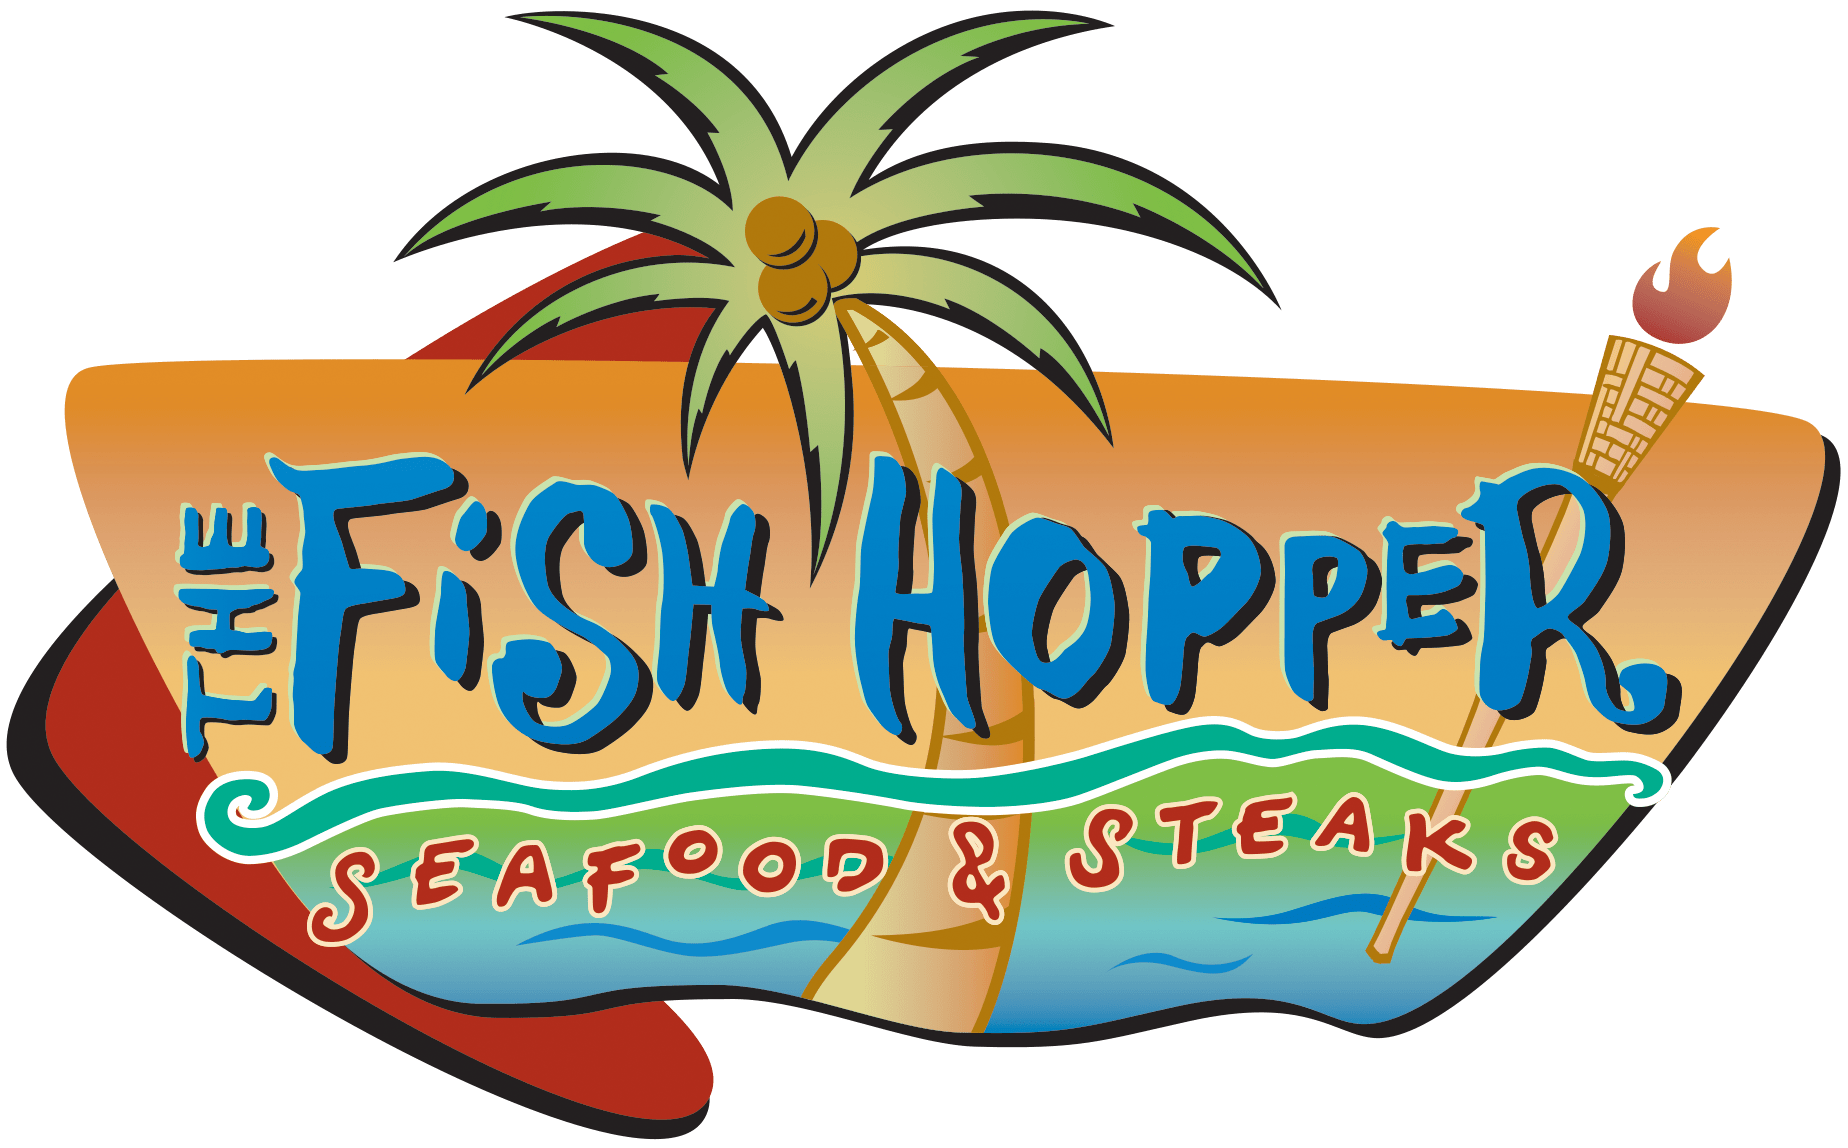 The Fish Hopper